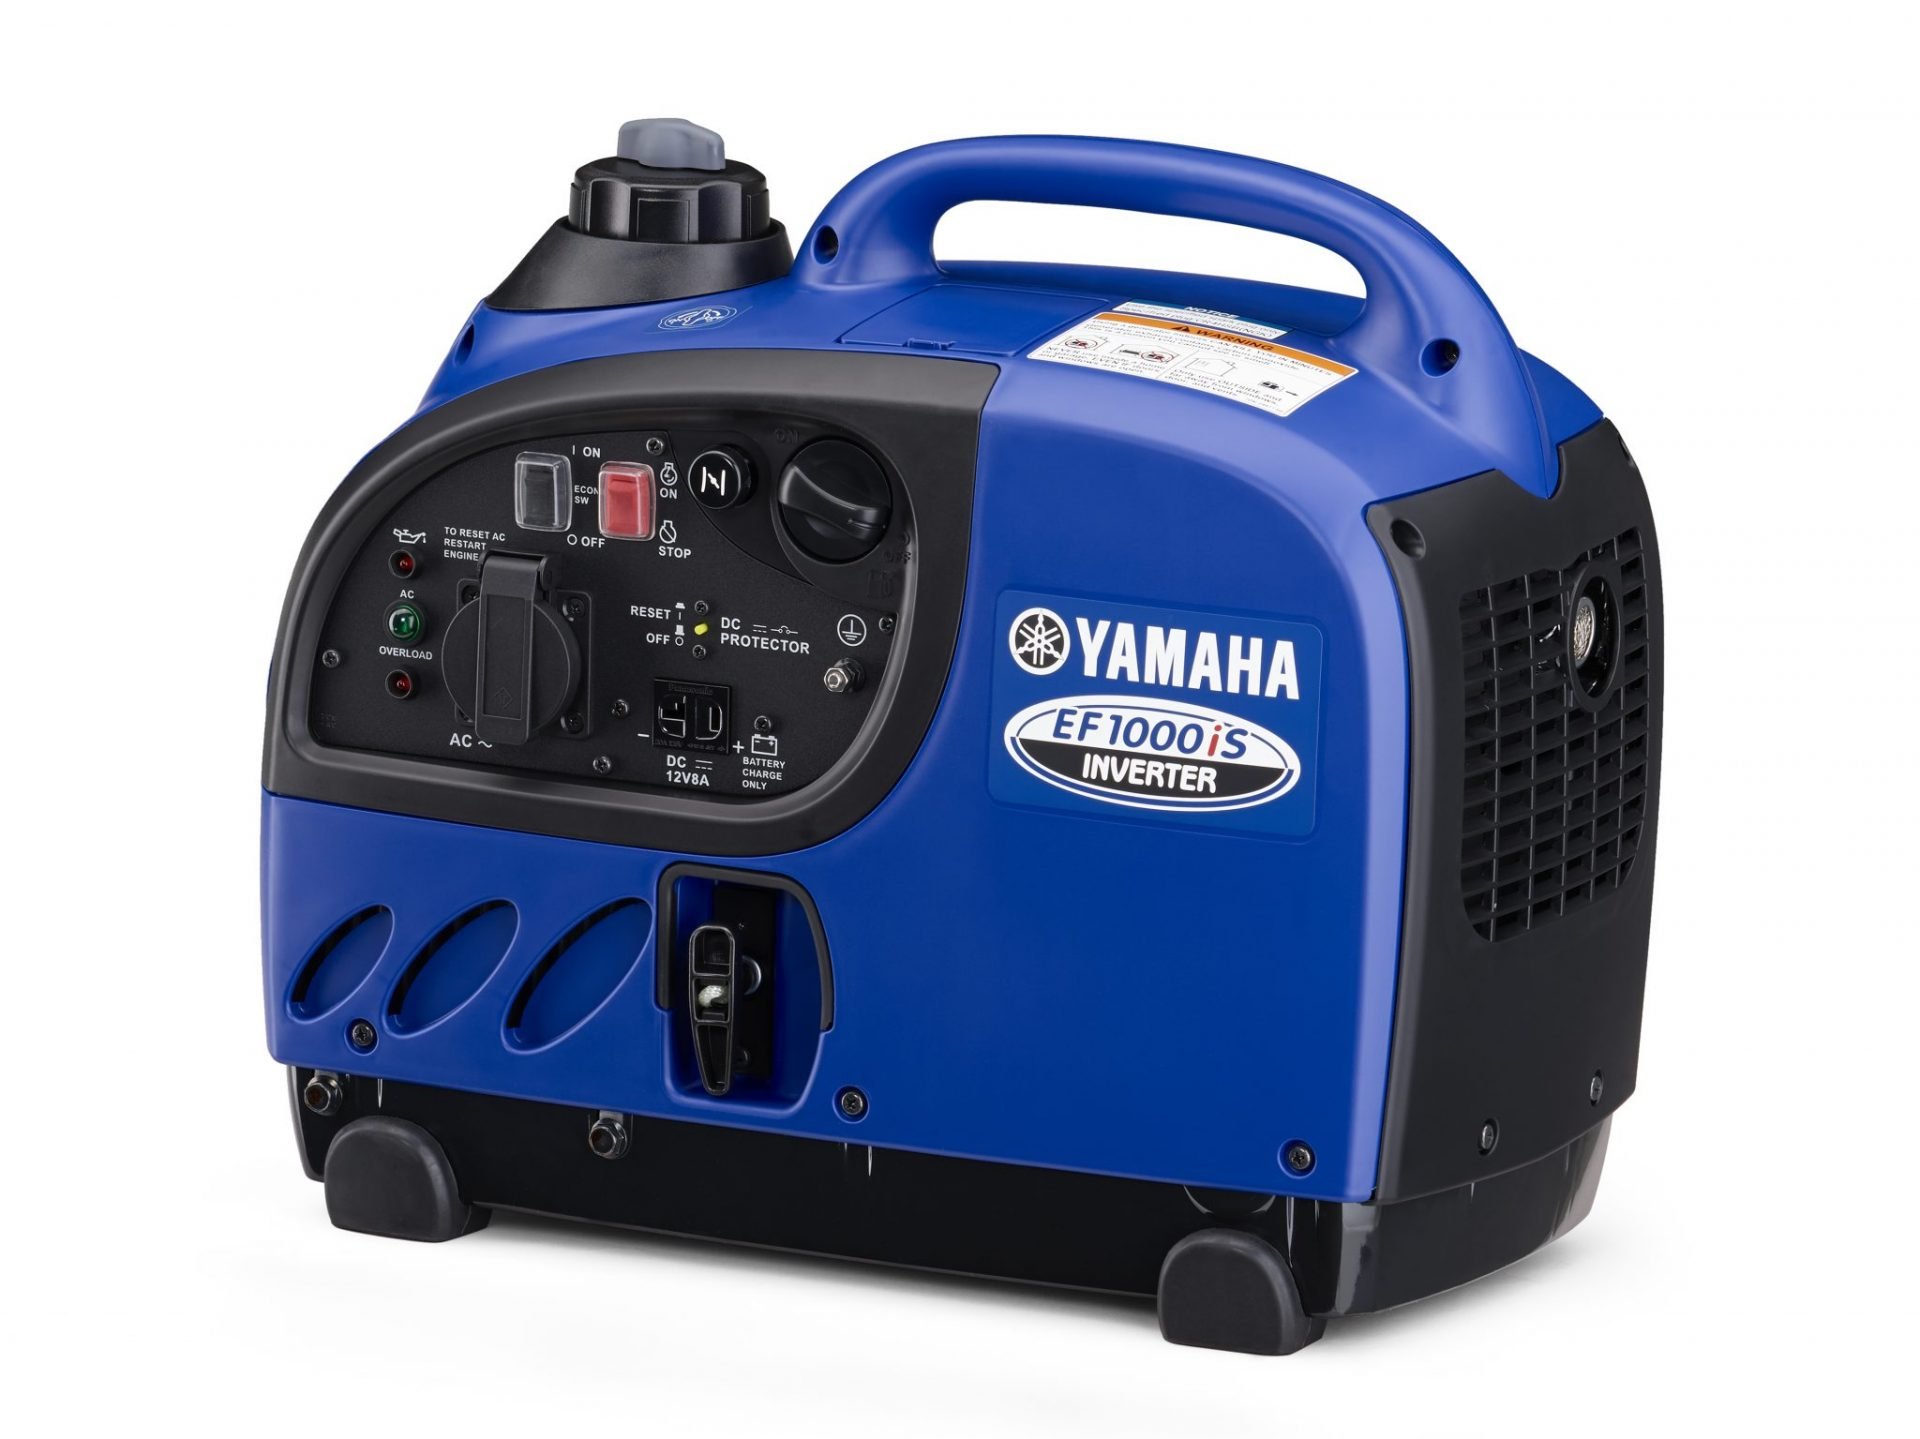 Our Range of Portable Generators and Accessories - Yamaha